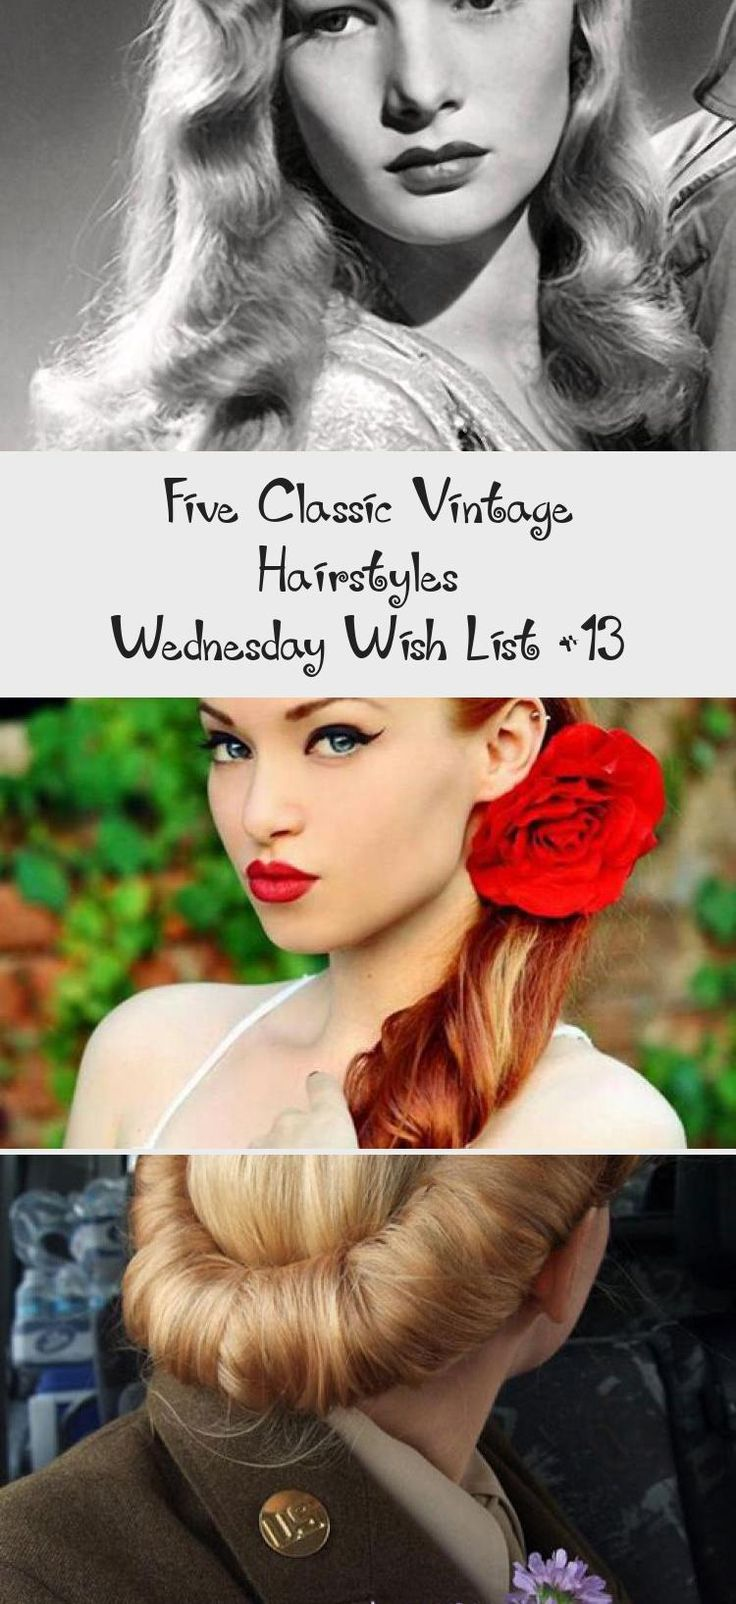 Five Classic Vintage Hairstyles – Wednesday Wish List #13